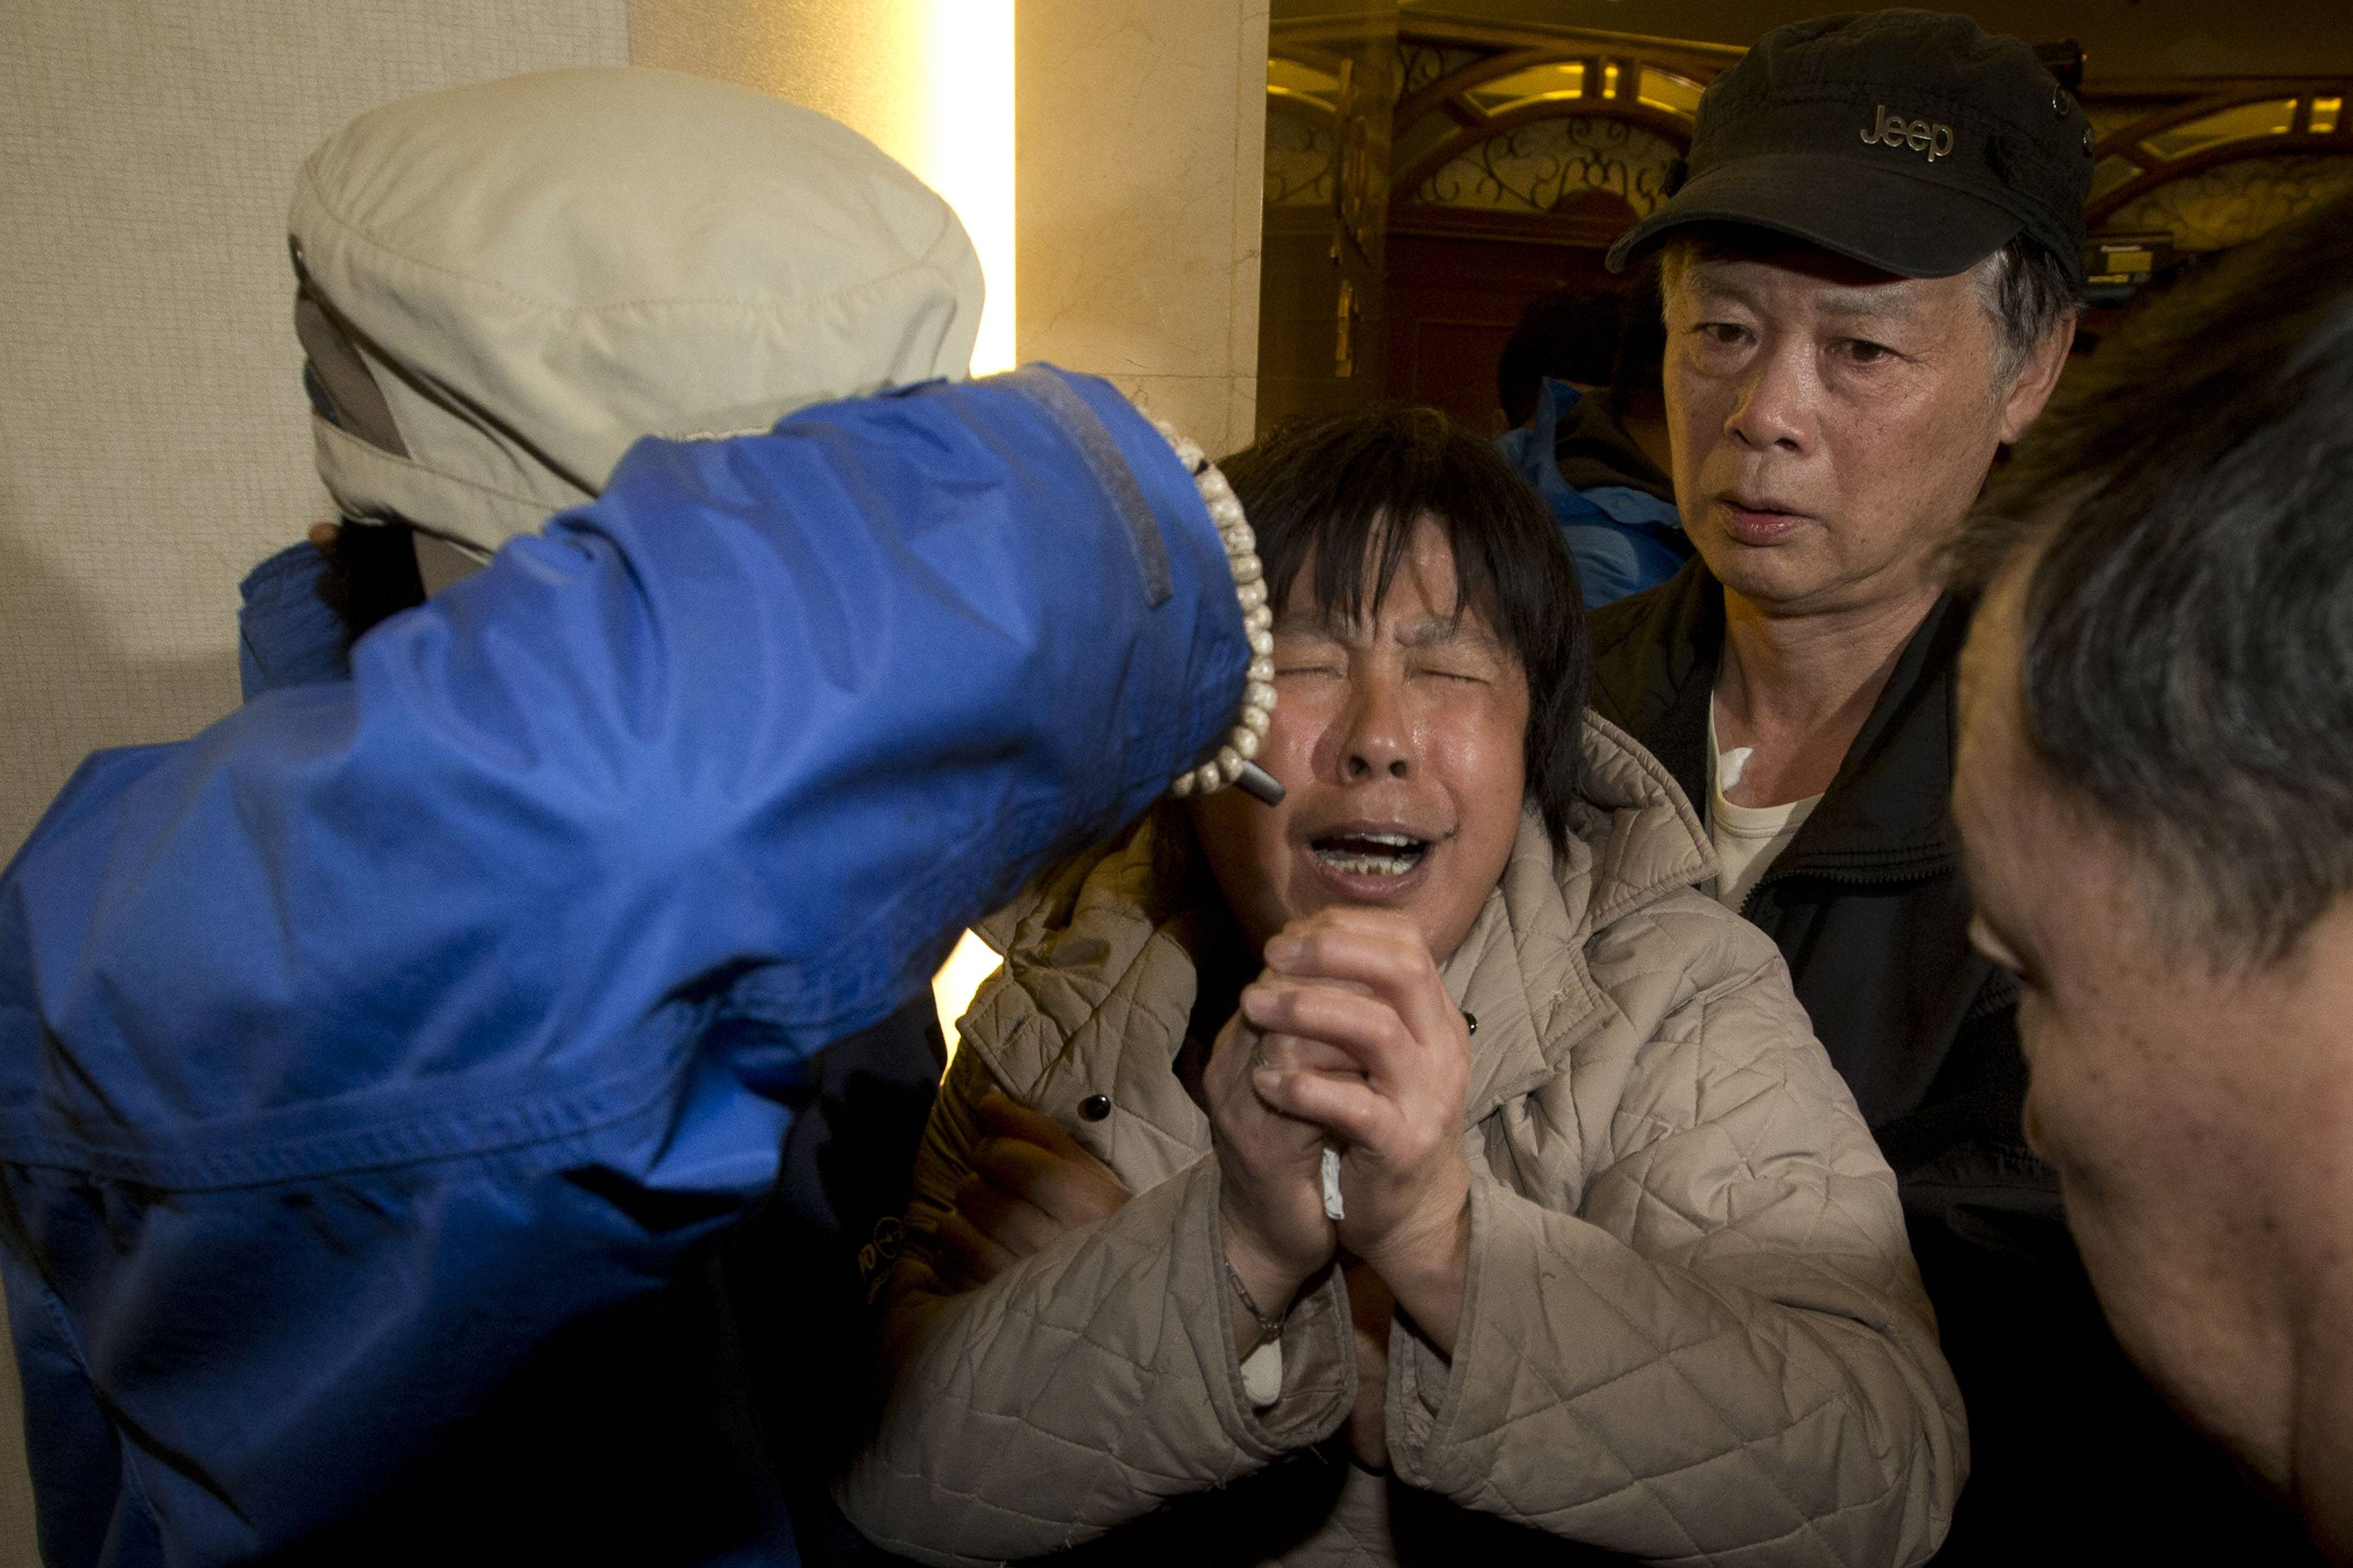 A relative of Chinese passengers aboard the Malaysia Airlines MH370 cries Monday after being told the latest update in Beijing, China. A new analysis of satellite data indicates the missing Malaysia Airlines plane crashed into a remote corner of the Indian Ocean, Malaysian Prime Minister Najib Razak said Monday.